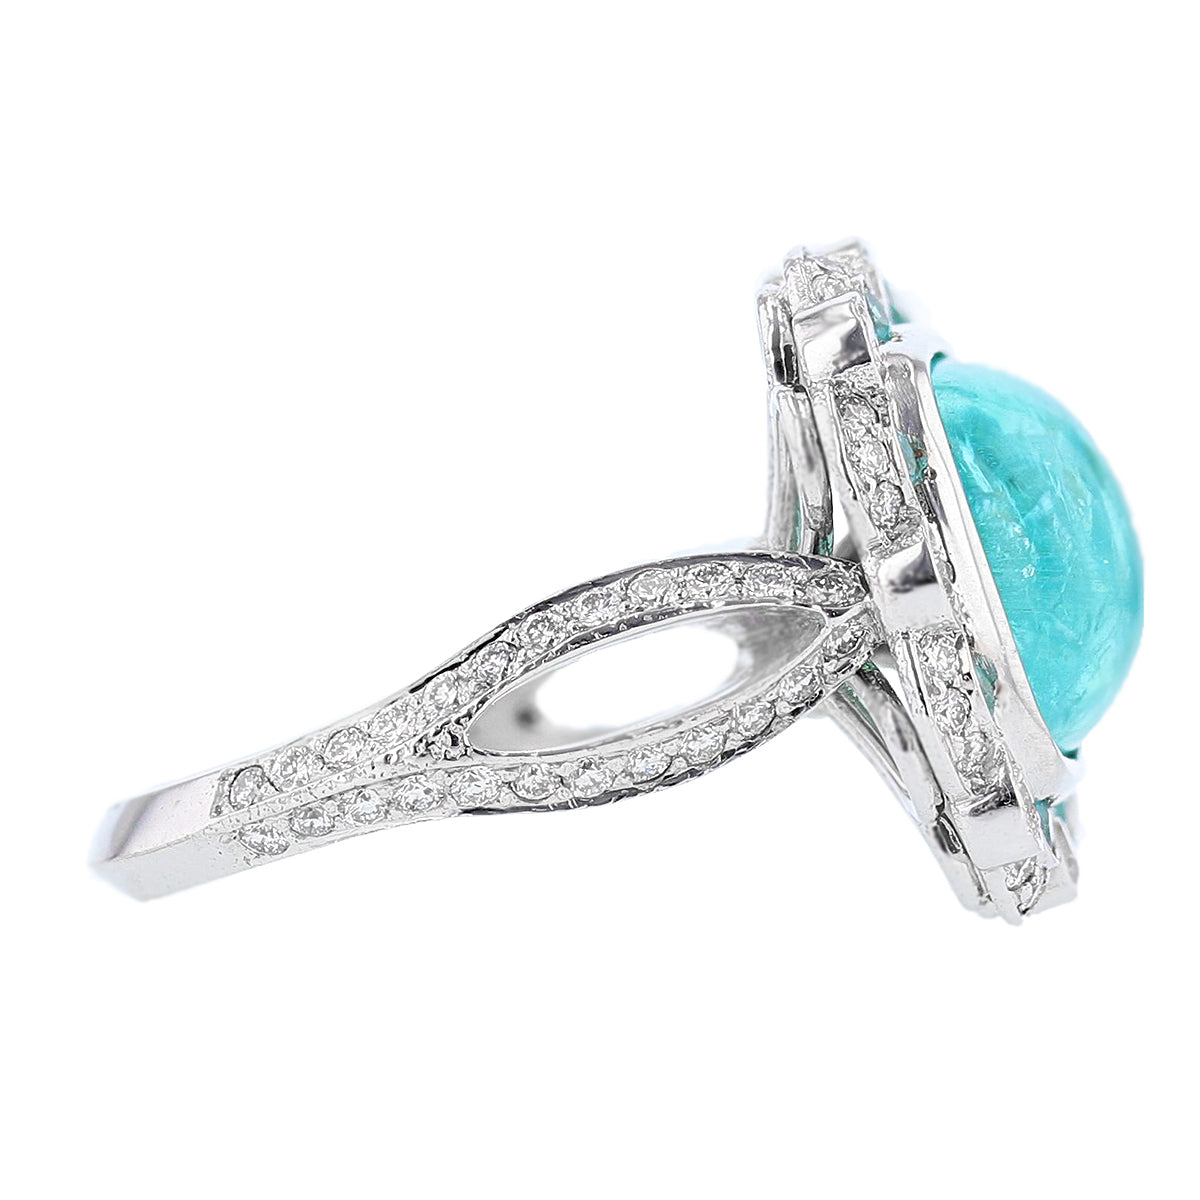 18K White Gold 6.62 Carat Cabachon Paraiba Tourmaline and Diamond Ring